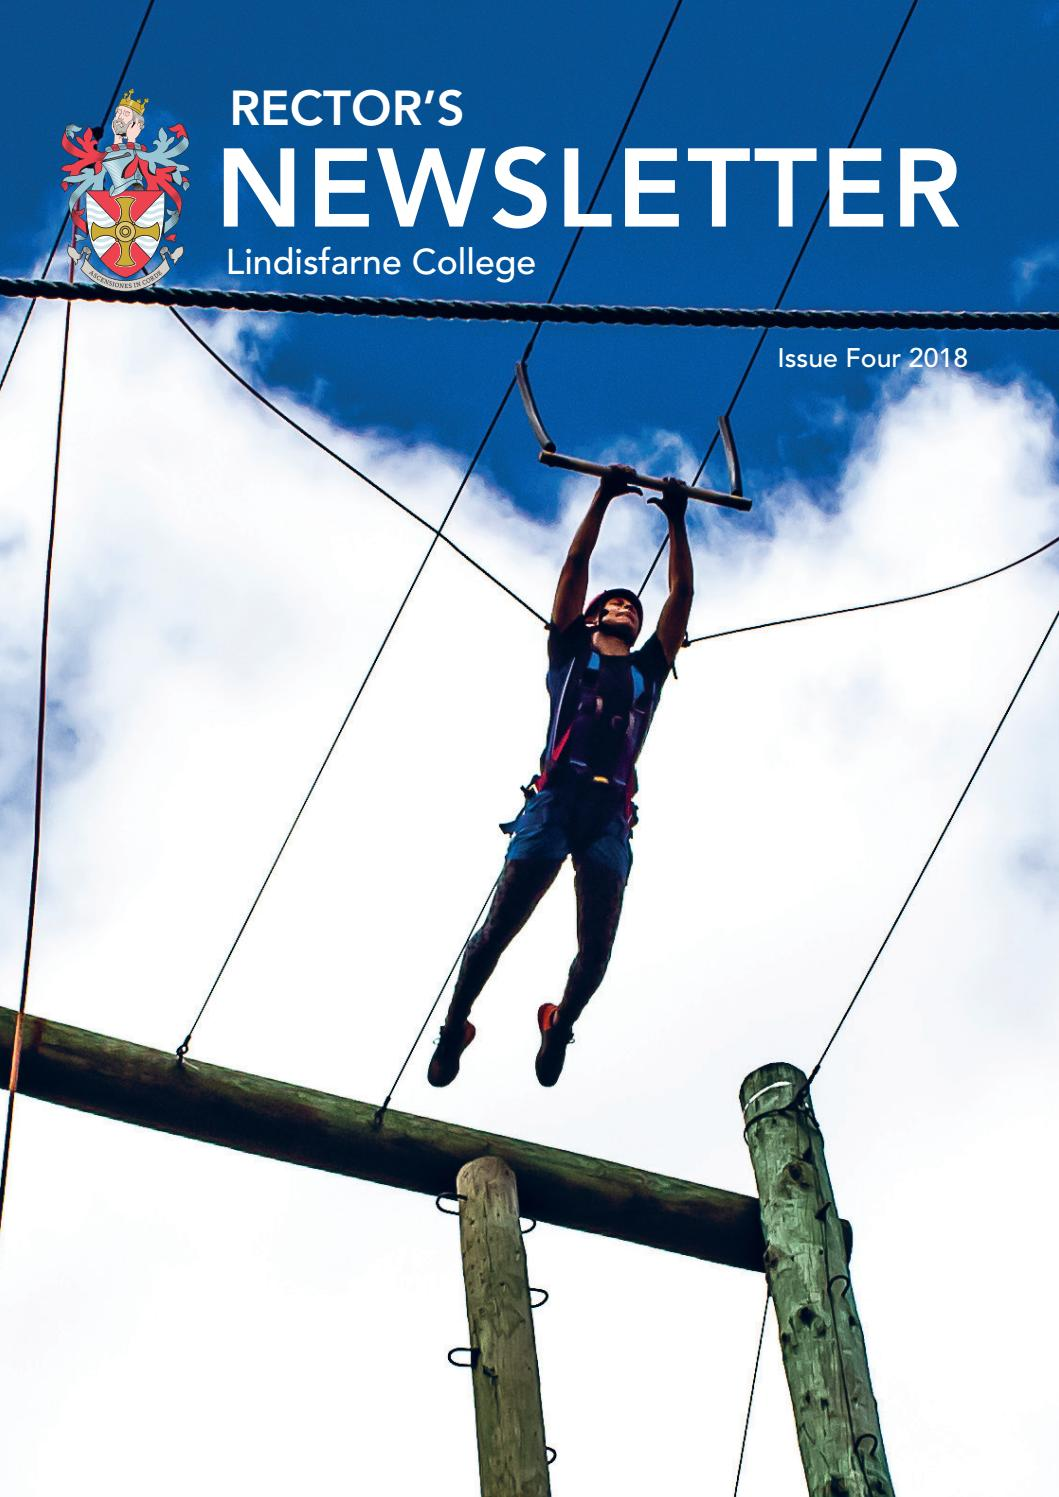 Rector's Newsletter Term 4 by lindisfarne College - issuu